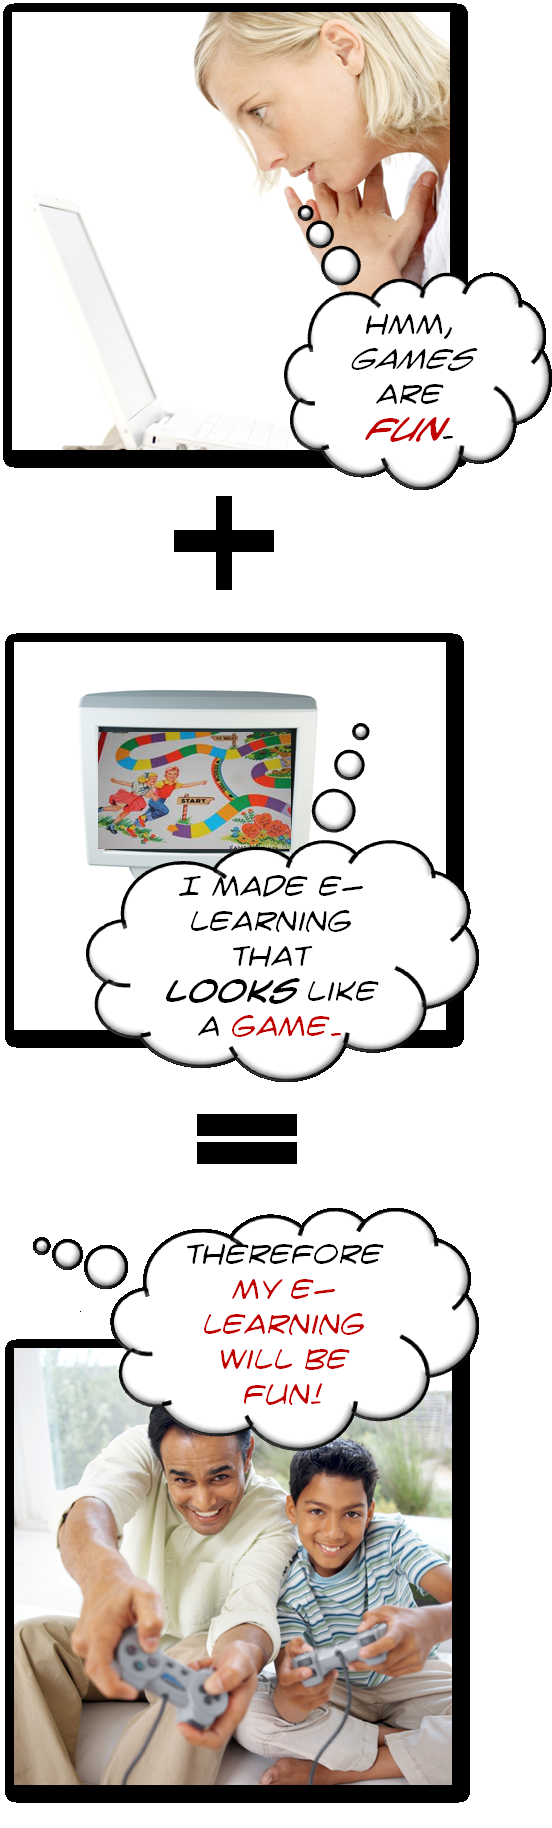 Games are fun + I made e-Learning that looks like a game = Therefore my e-Learning will be fun!